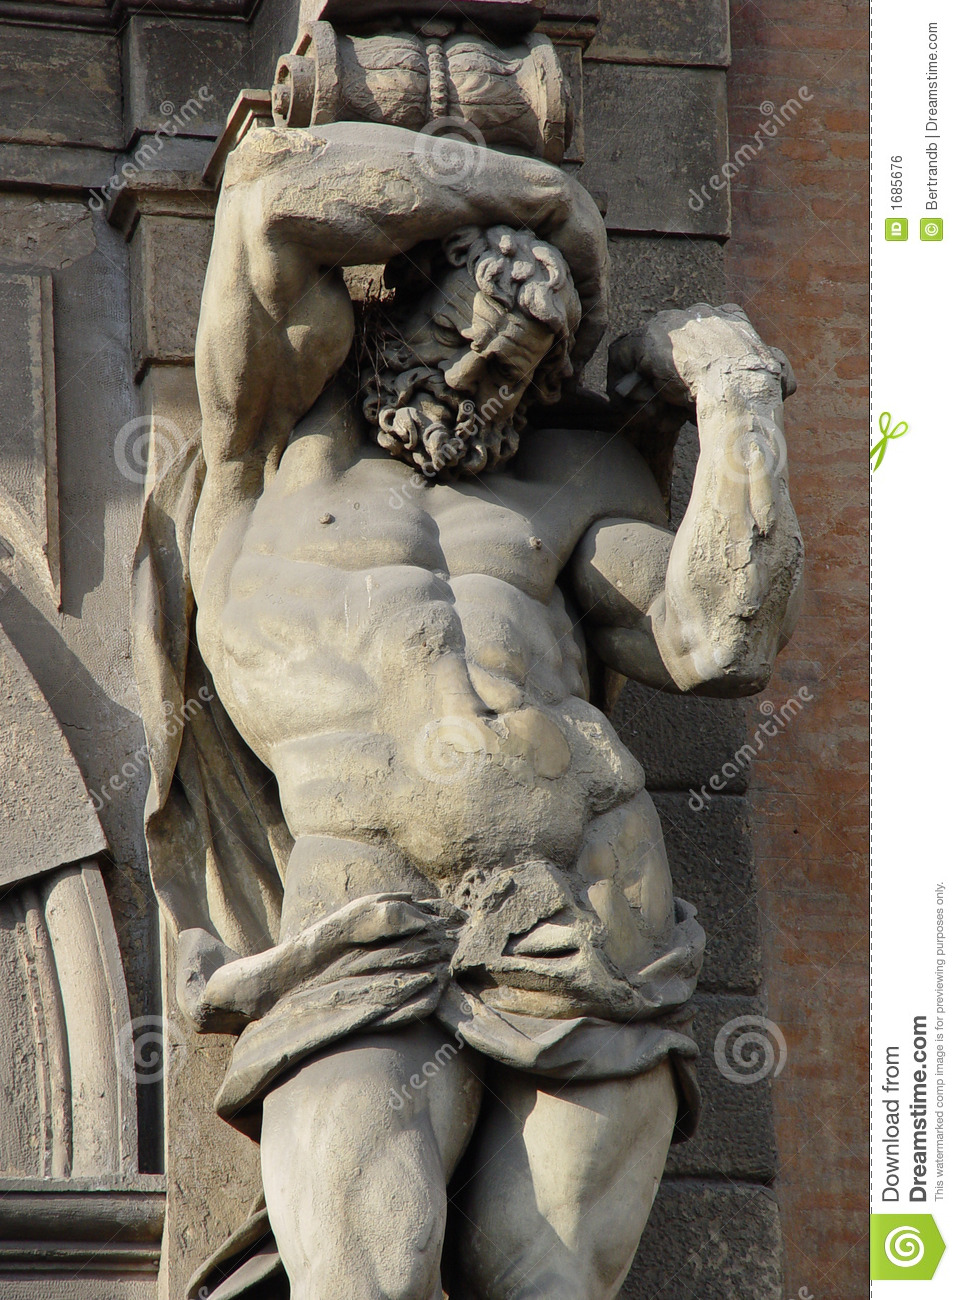 Exterieur 8 X 10 Atlante Statue Stock Photo. Image Of Building, Fine